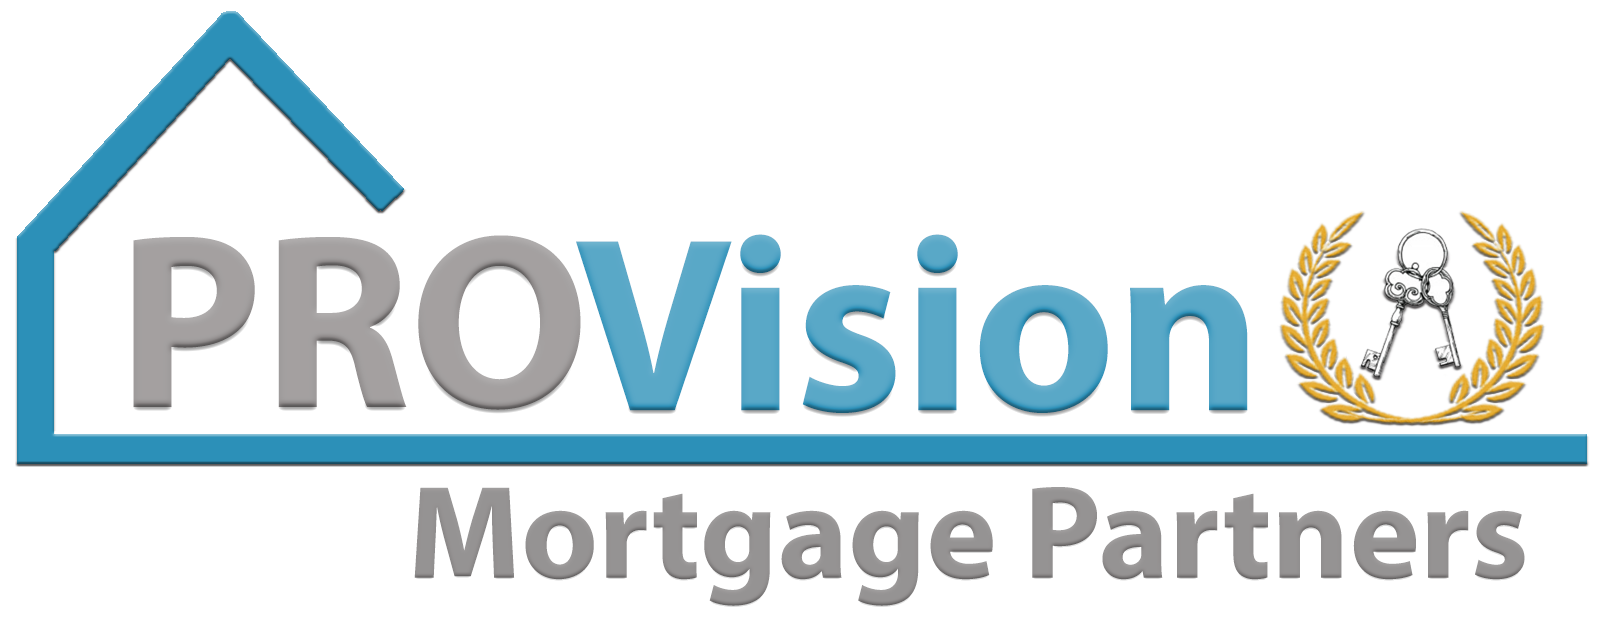 PROvision Mortgage Partners